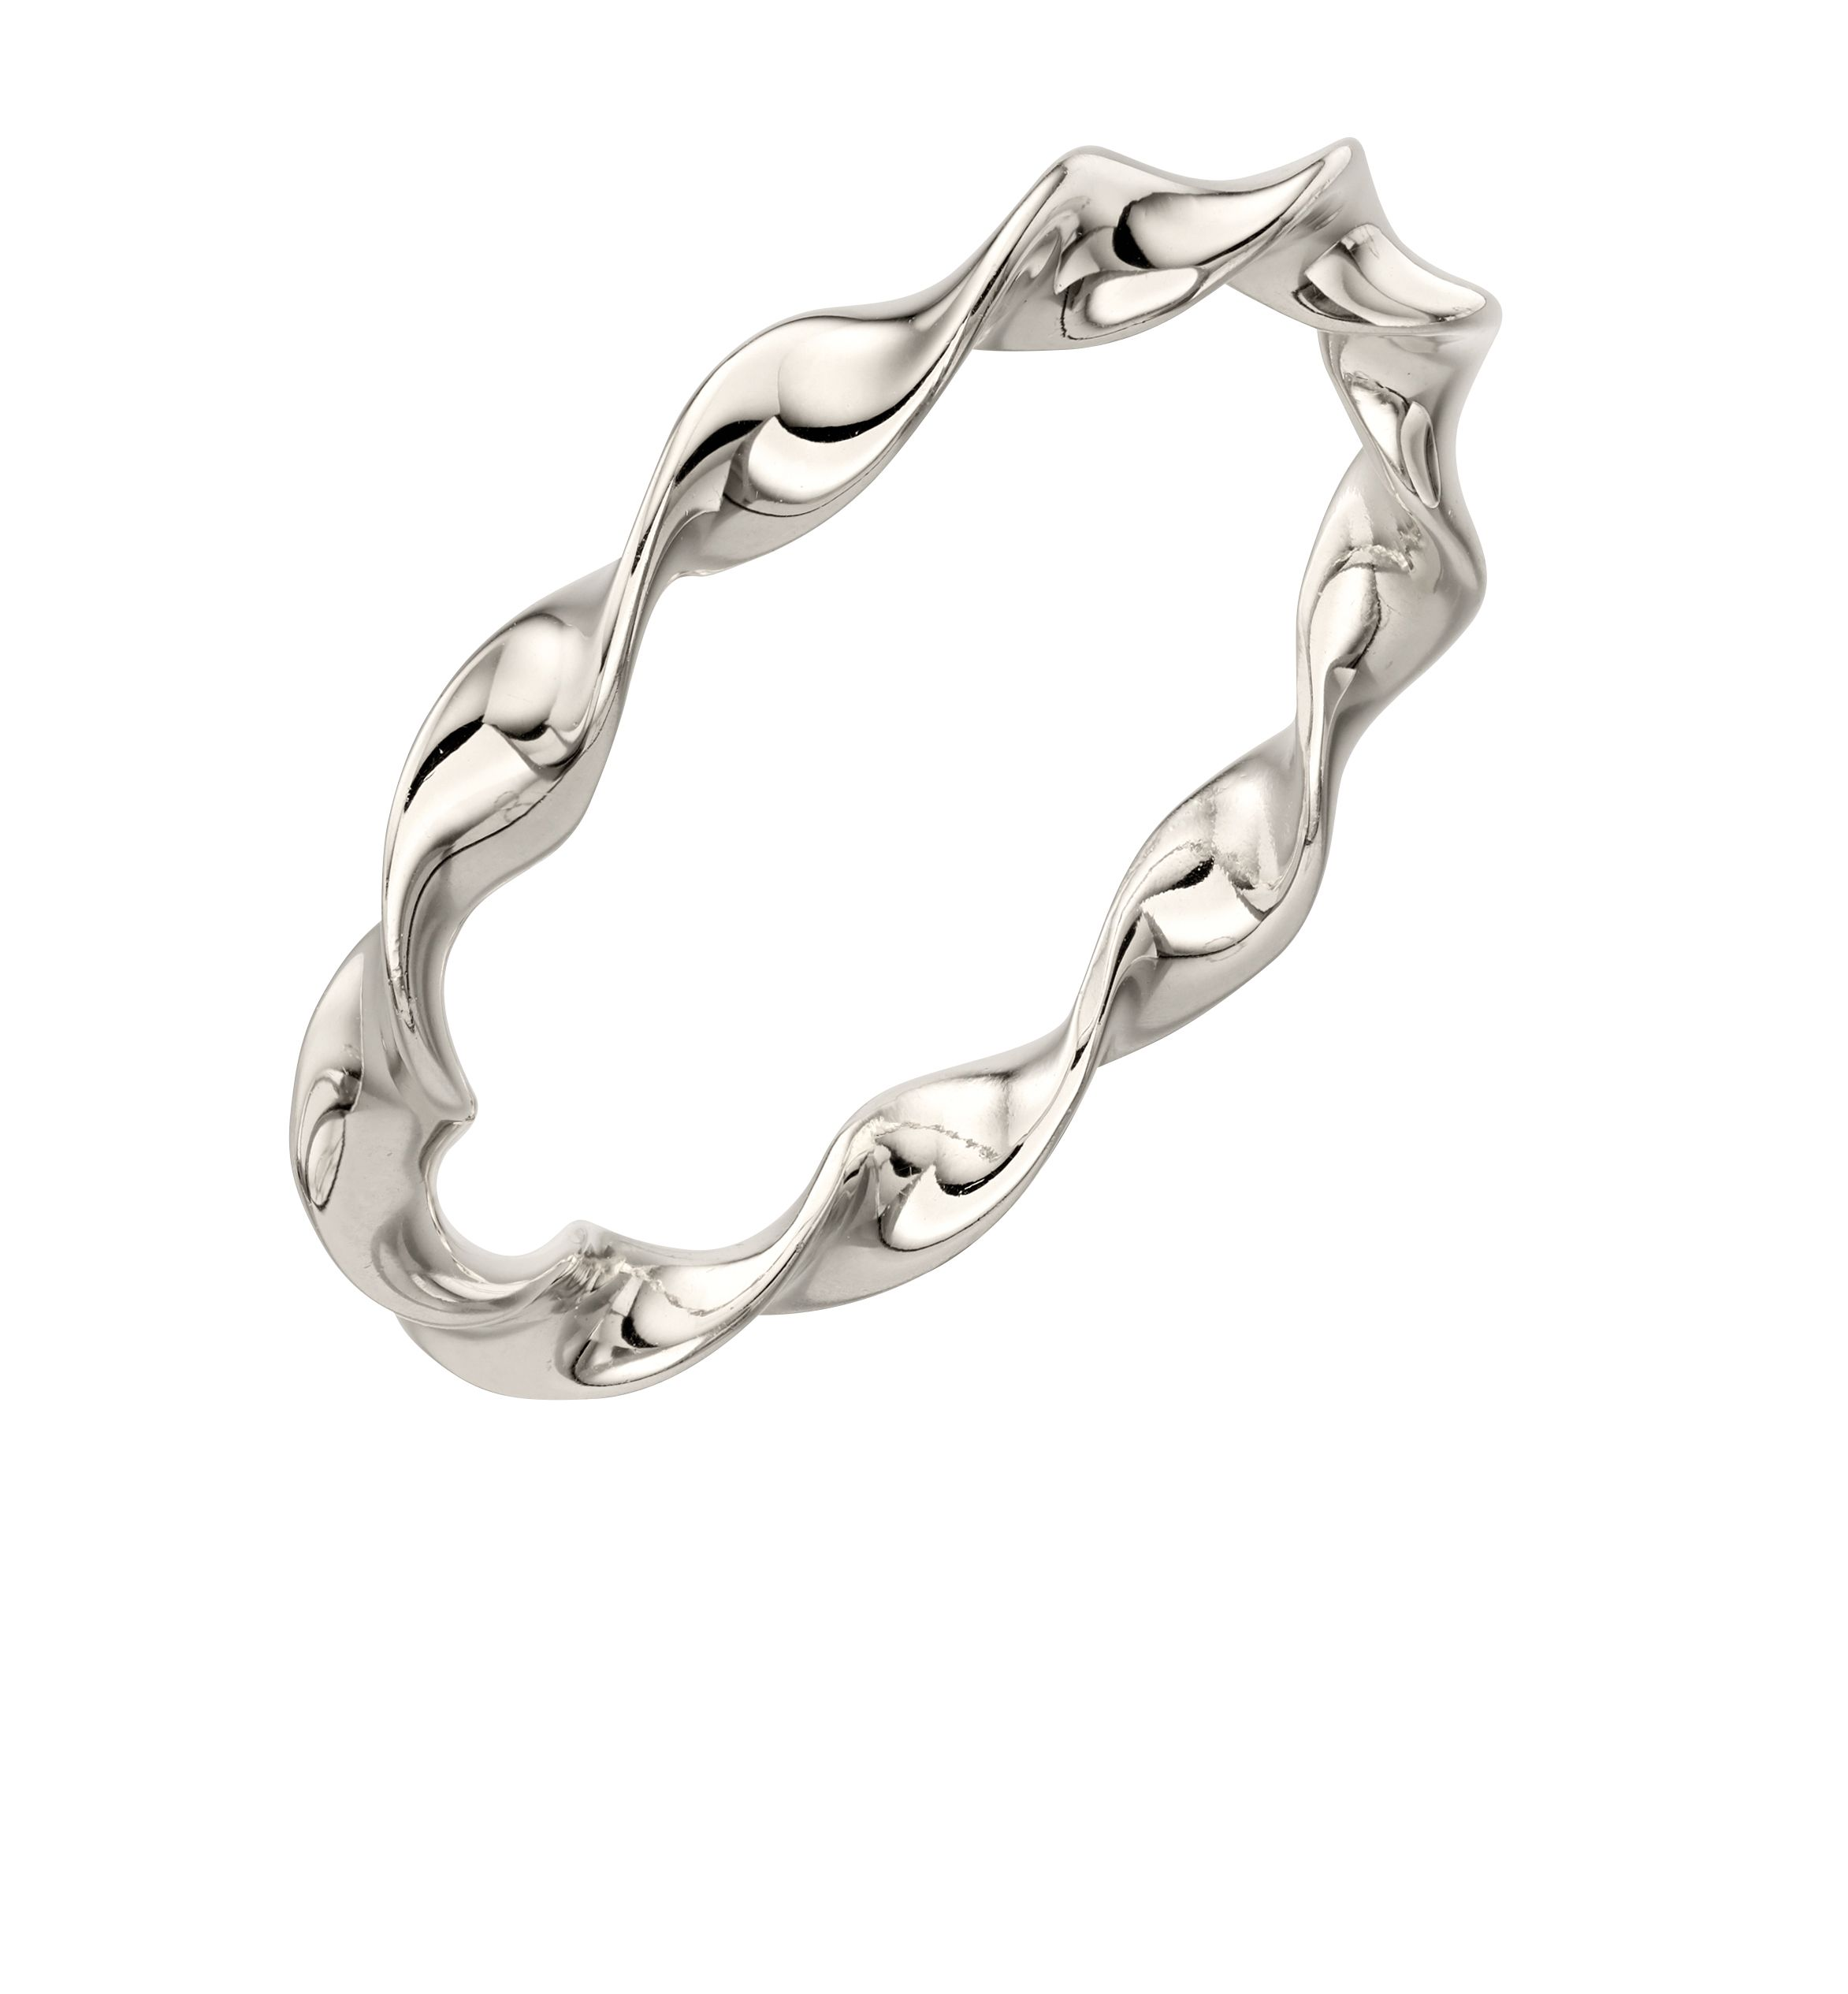 Elements Silver Womens 925 Sterling Silver Twist Band Ring